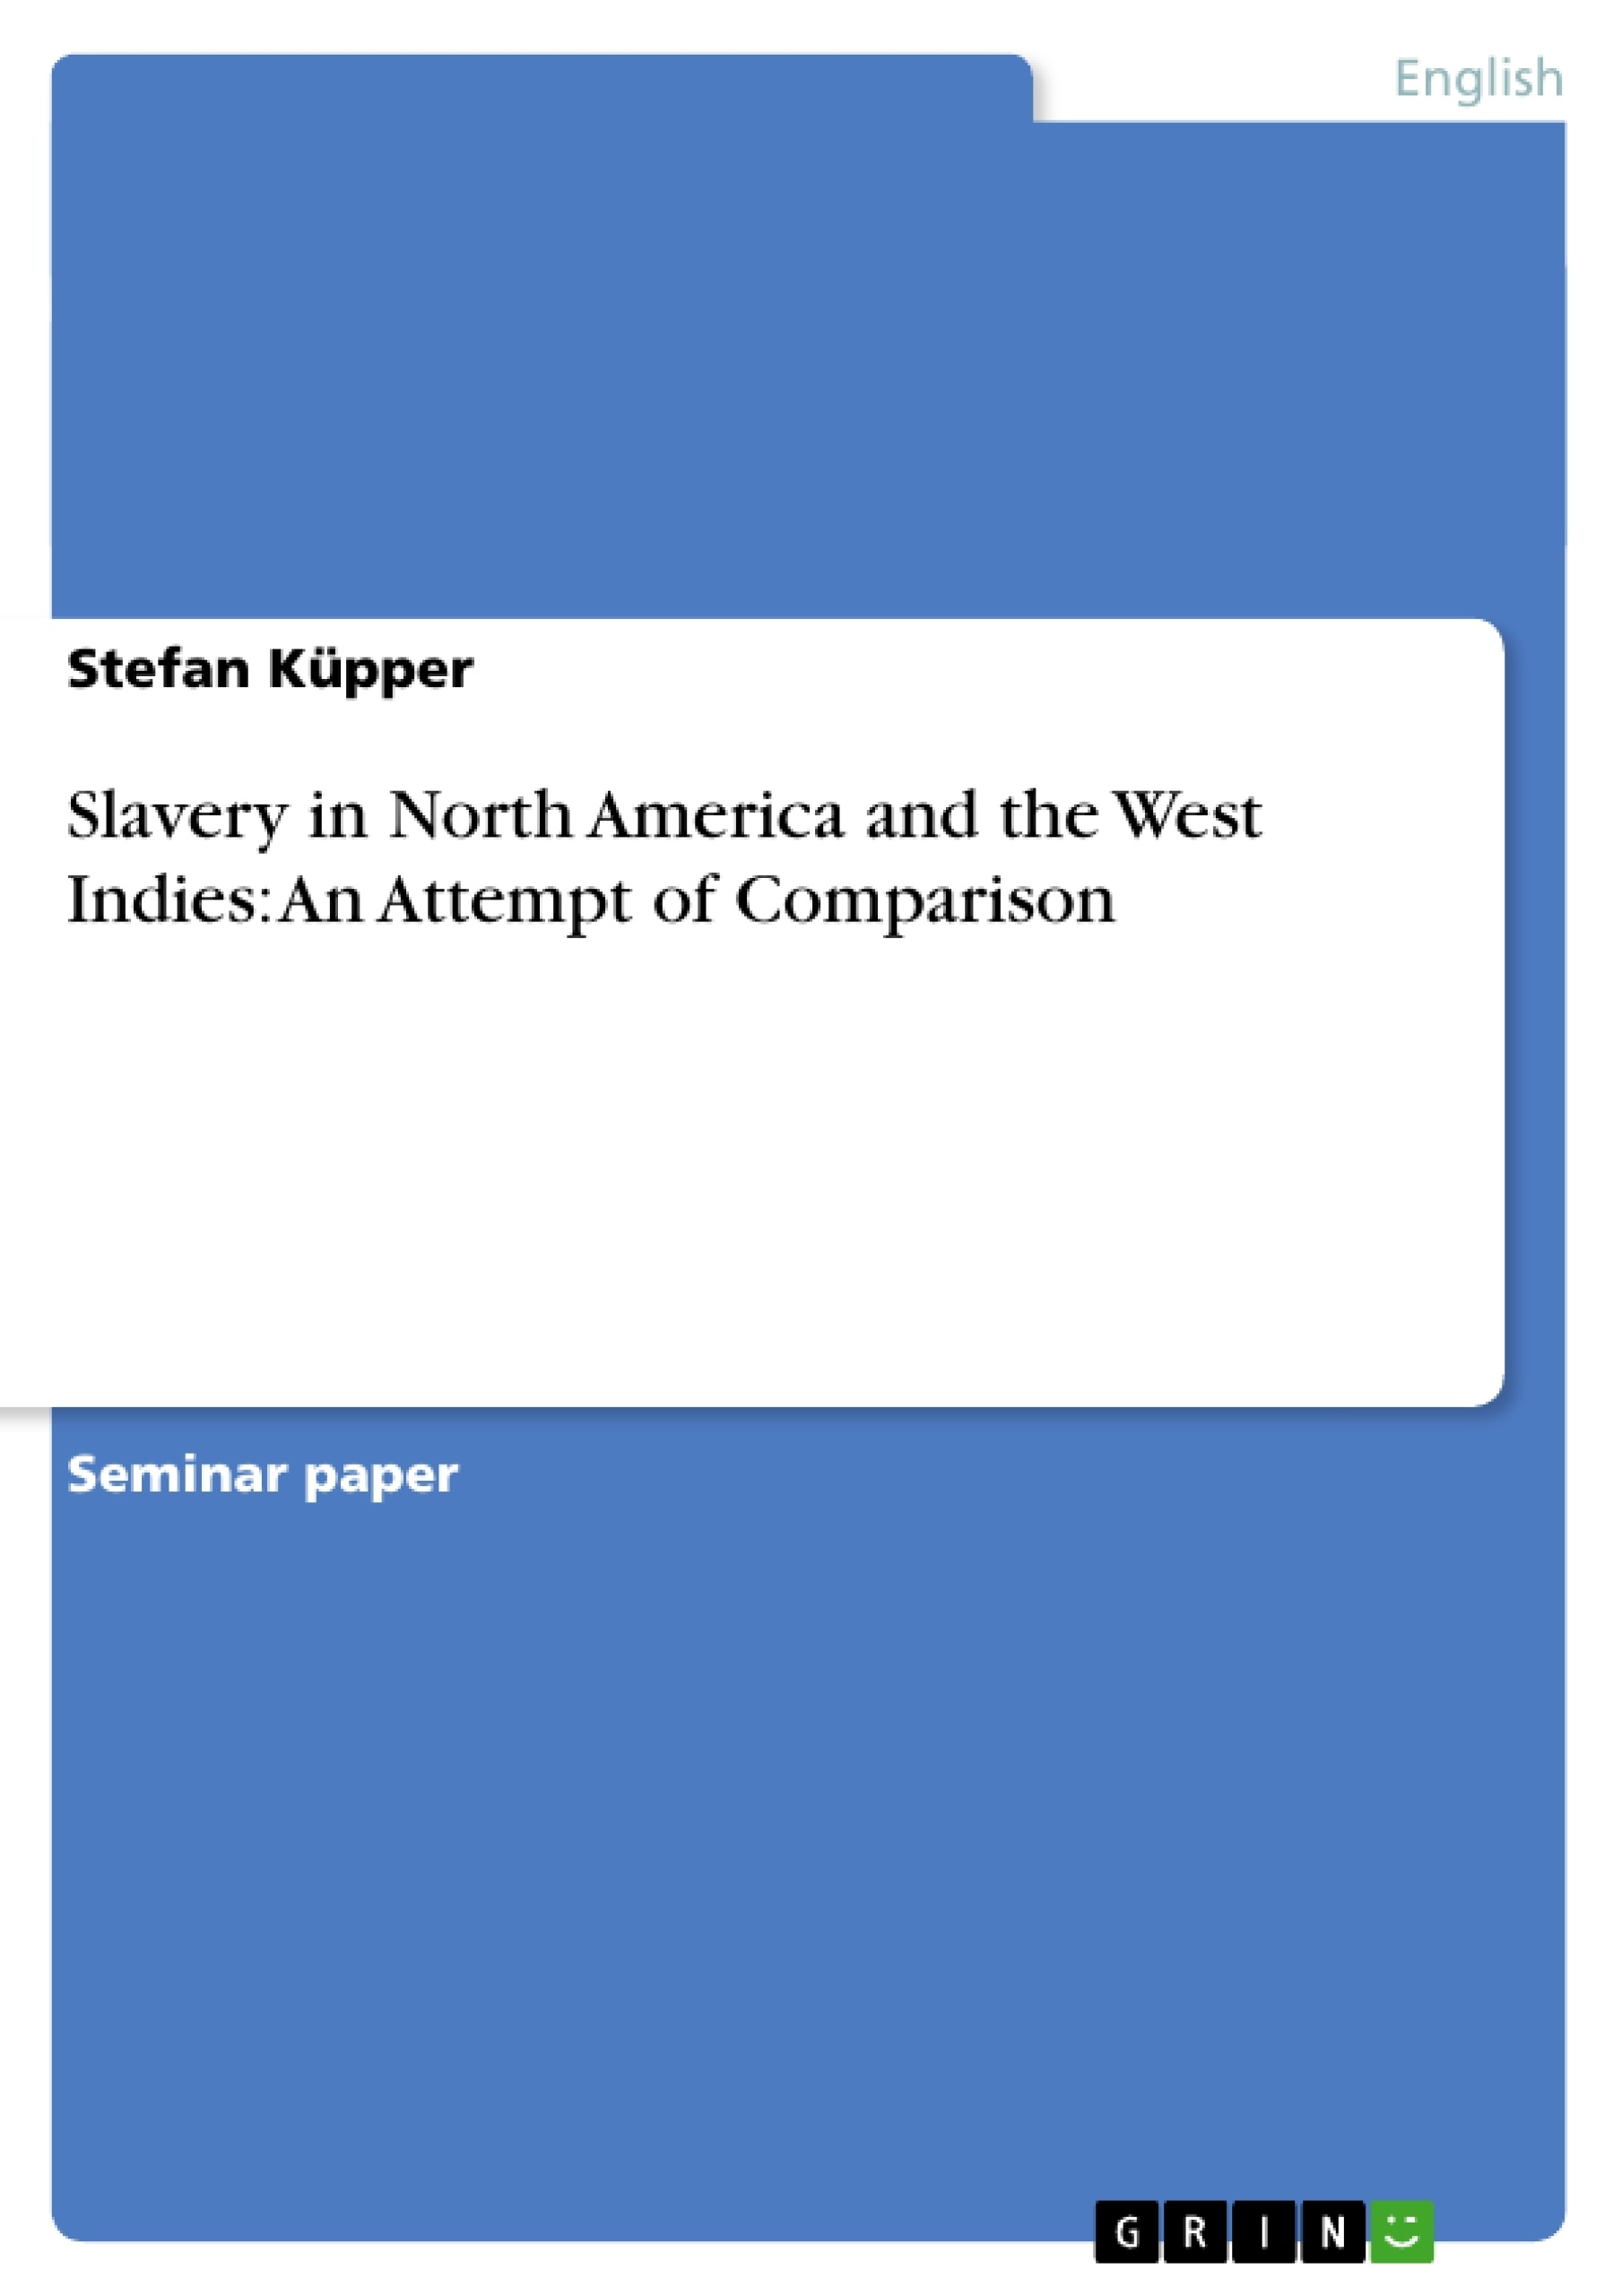 Title: Slavery in North America and the West Indies: An Attempt of Comparison